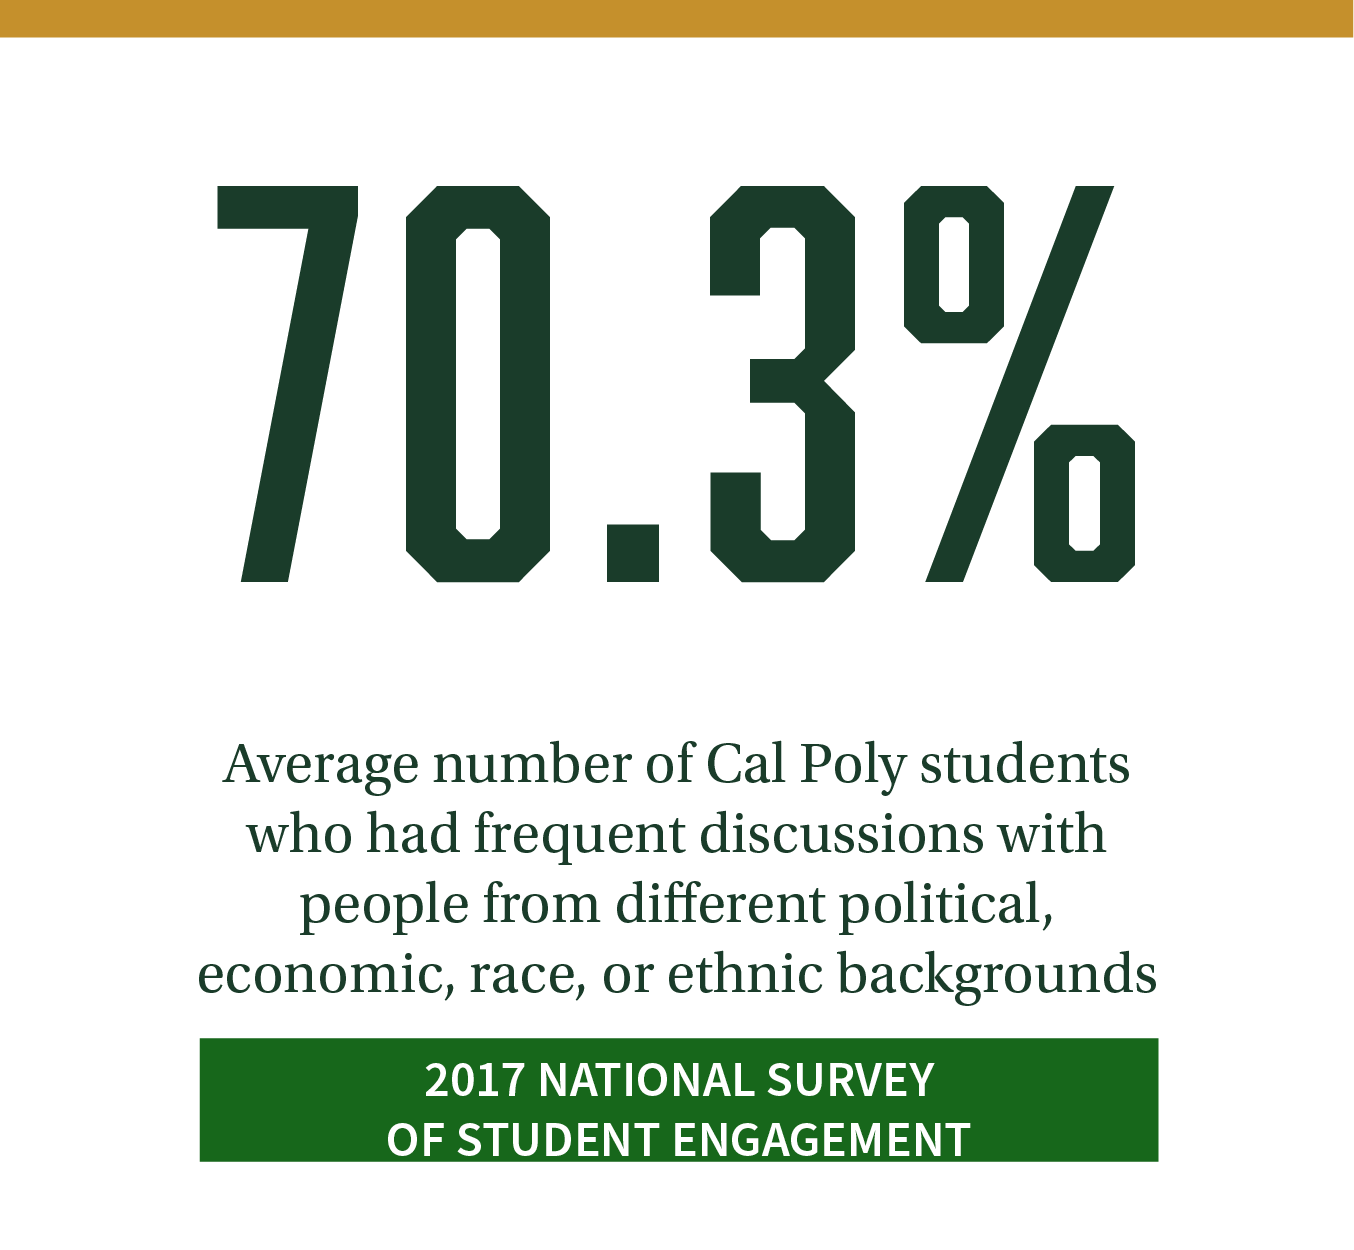 70.3%. Average number of Cal Poly students who had frequent discussions with people from different political, economic, race, or ethnic backgrounds. Click to review more results from the 2017 National Survey of Student Engagement.